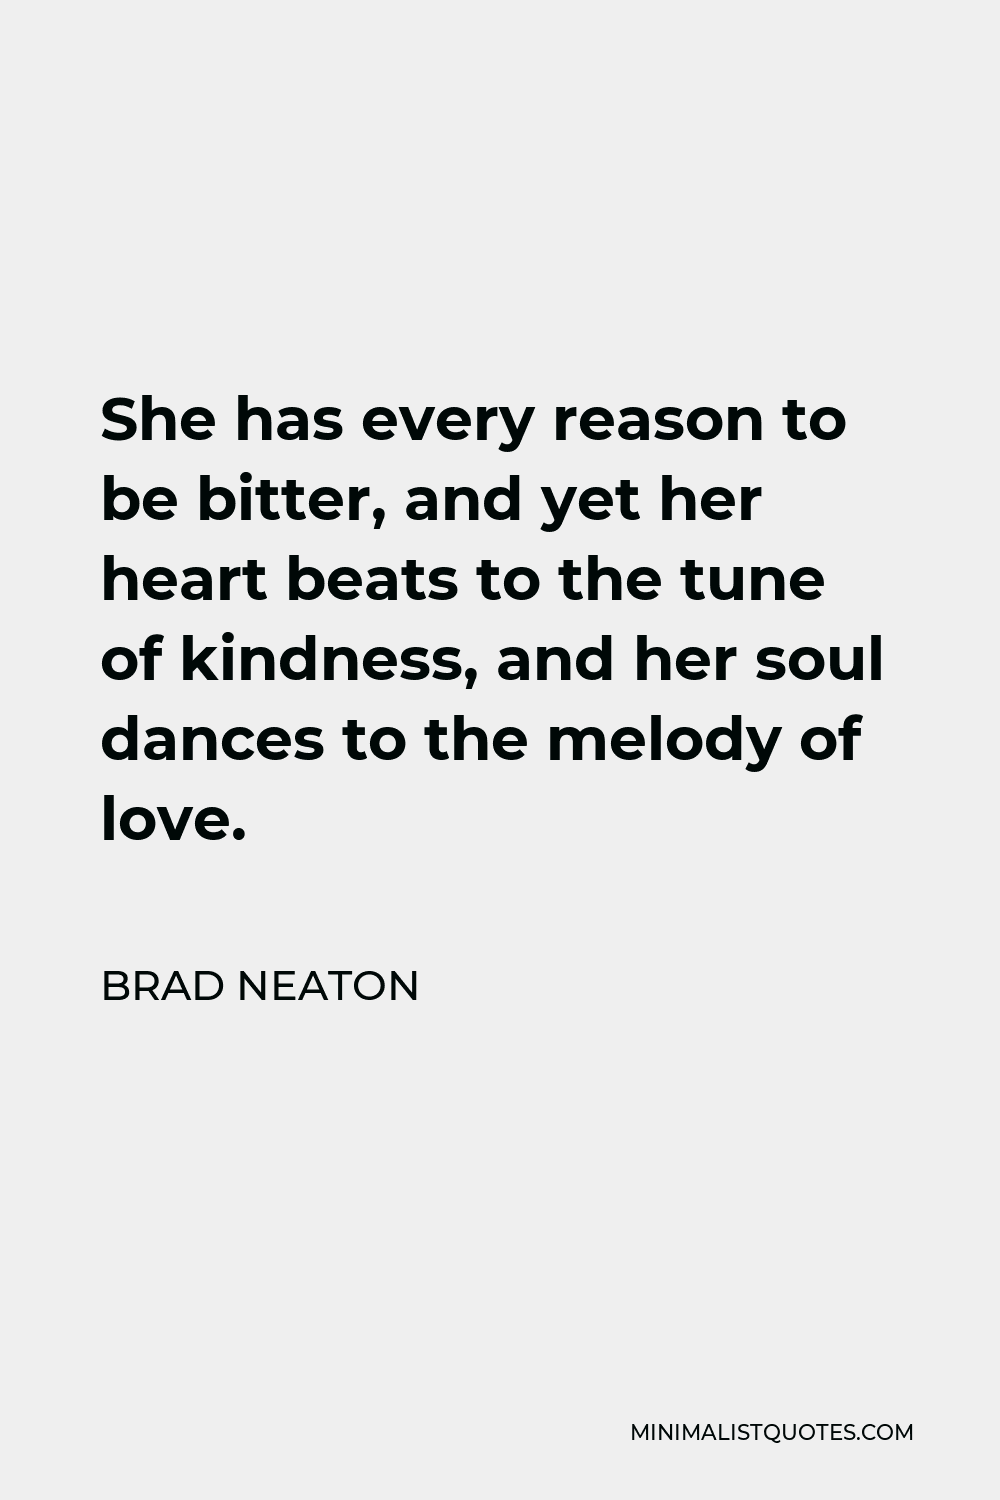 Brad Neaton Quote - She has every reason to be bitter, and yet her heart beats to the tune of kindness, and her soul dances to the melody of love.